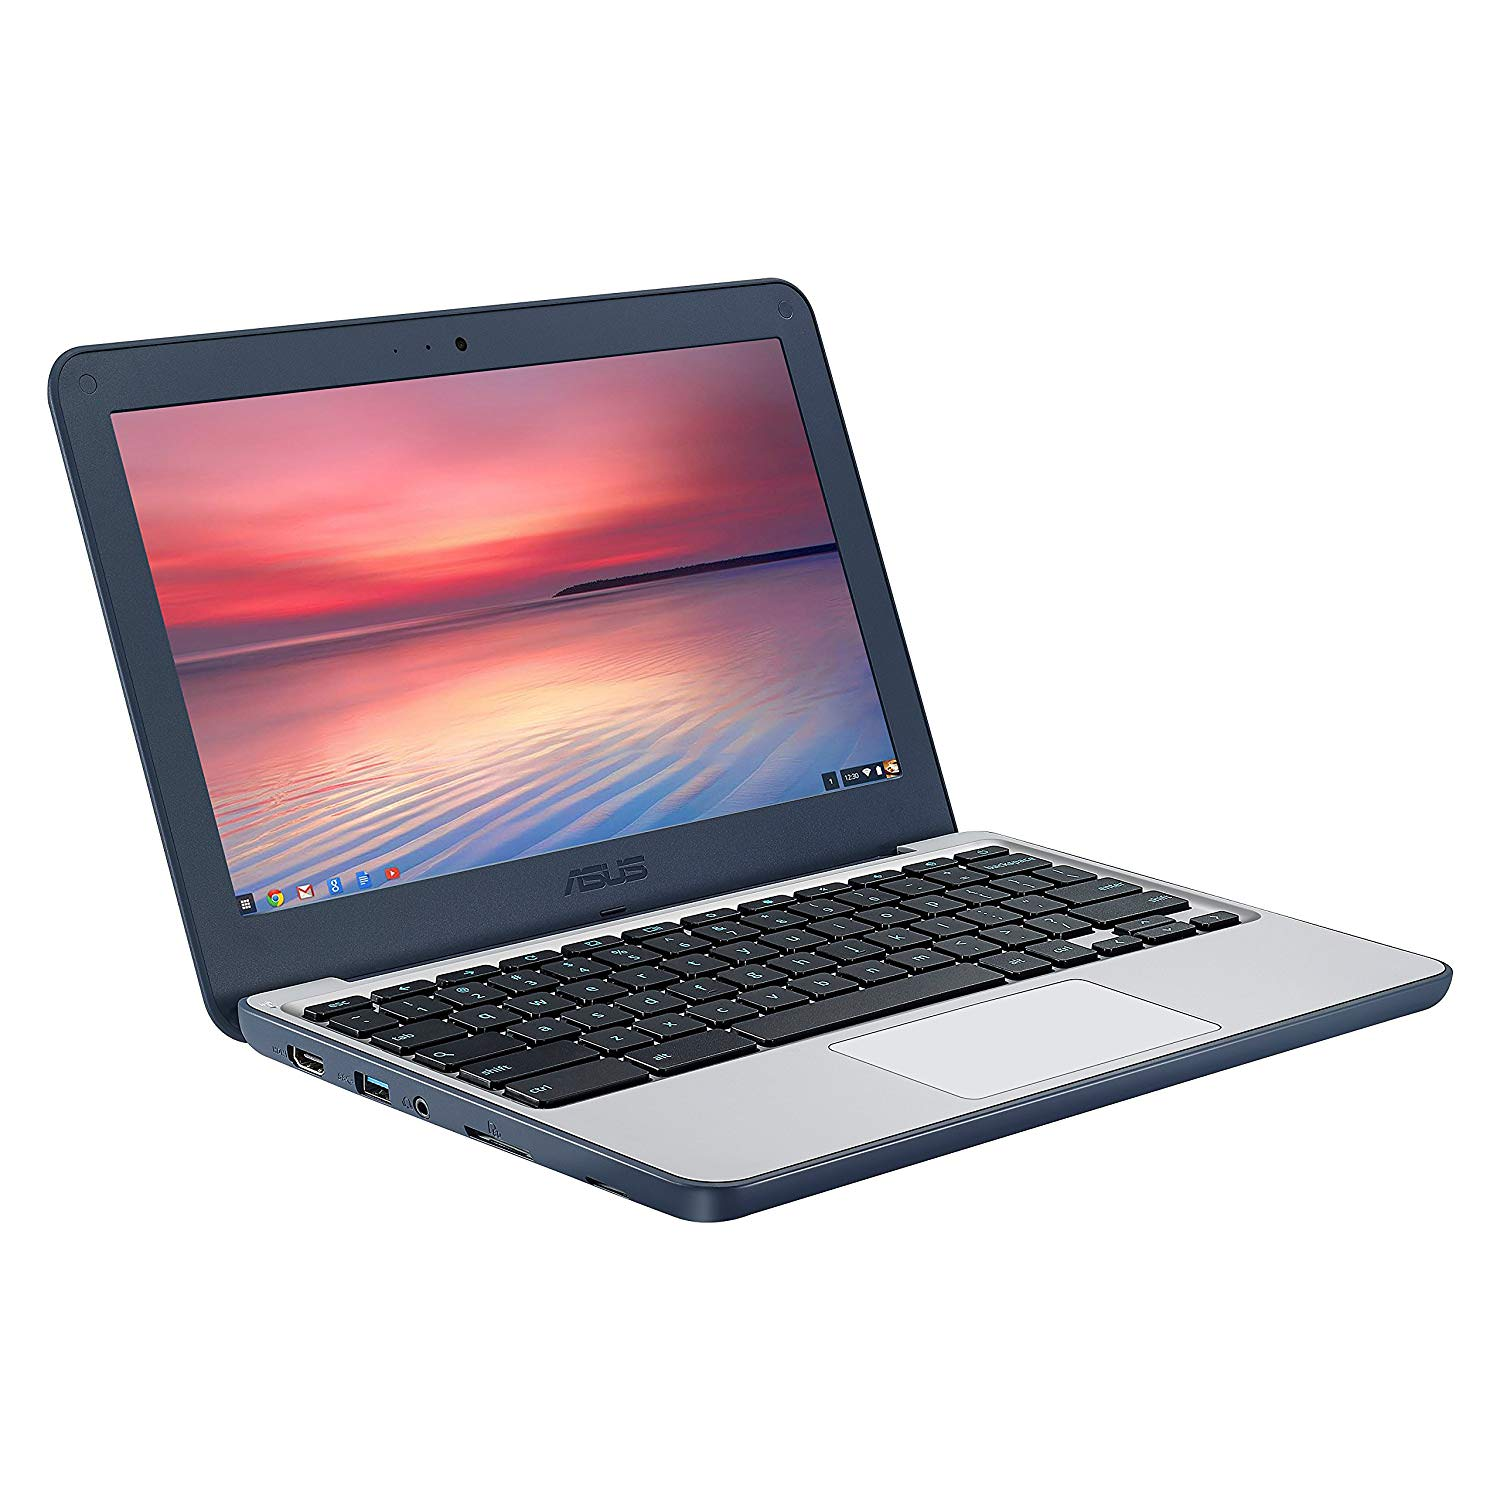 "Asus C202 C202SA-YS04 11.6"" LCD Chromebook - Intel Celeron N3060 Dual-core (2 Core) 1.6GHz - 2GB LPDDR3 - 16GB Flash Memory - Chrome OS"